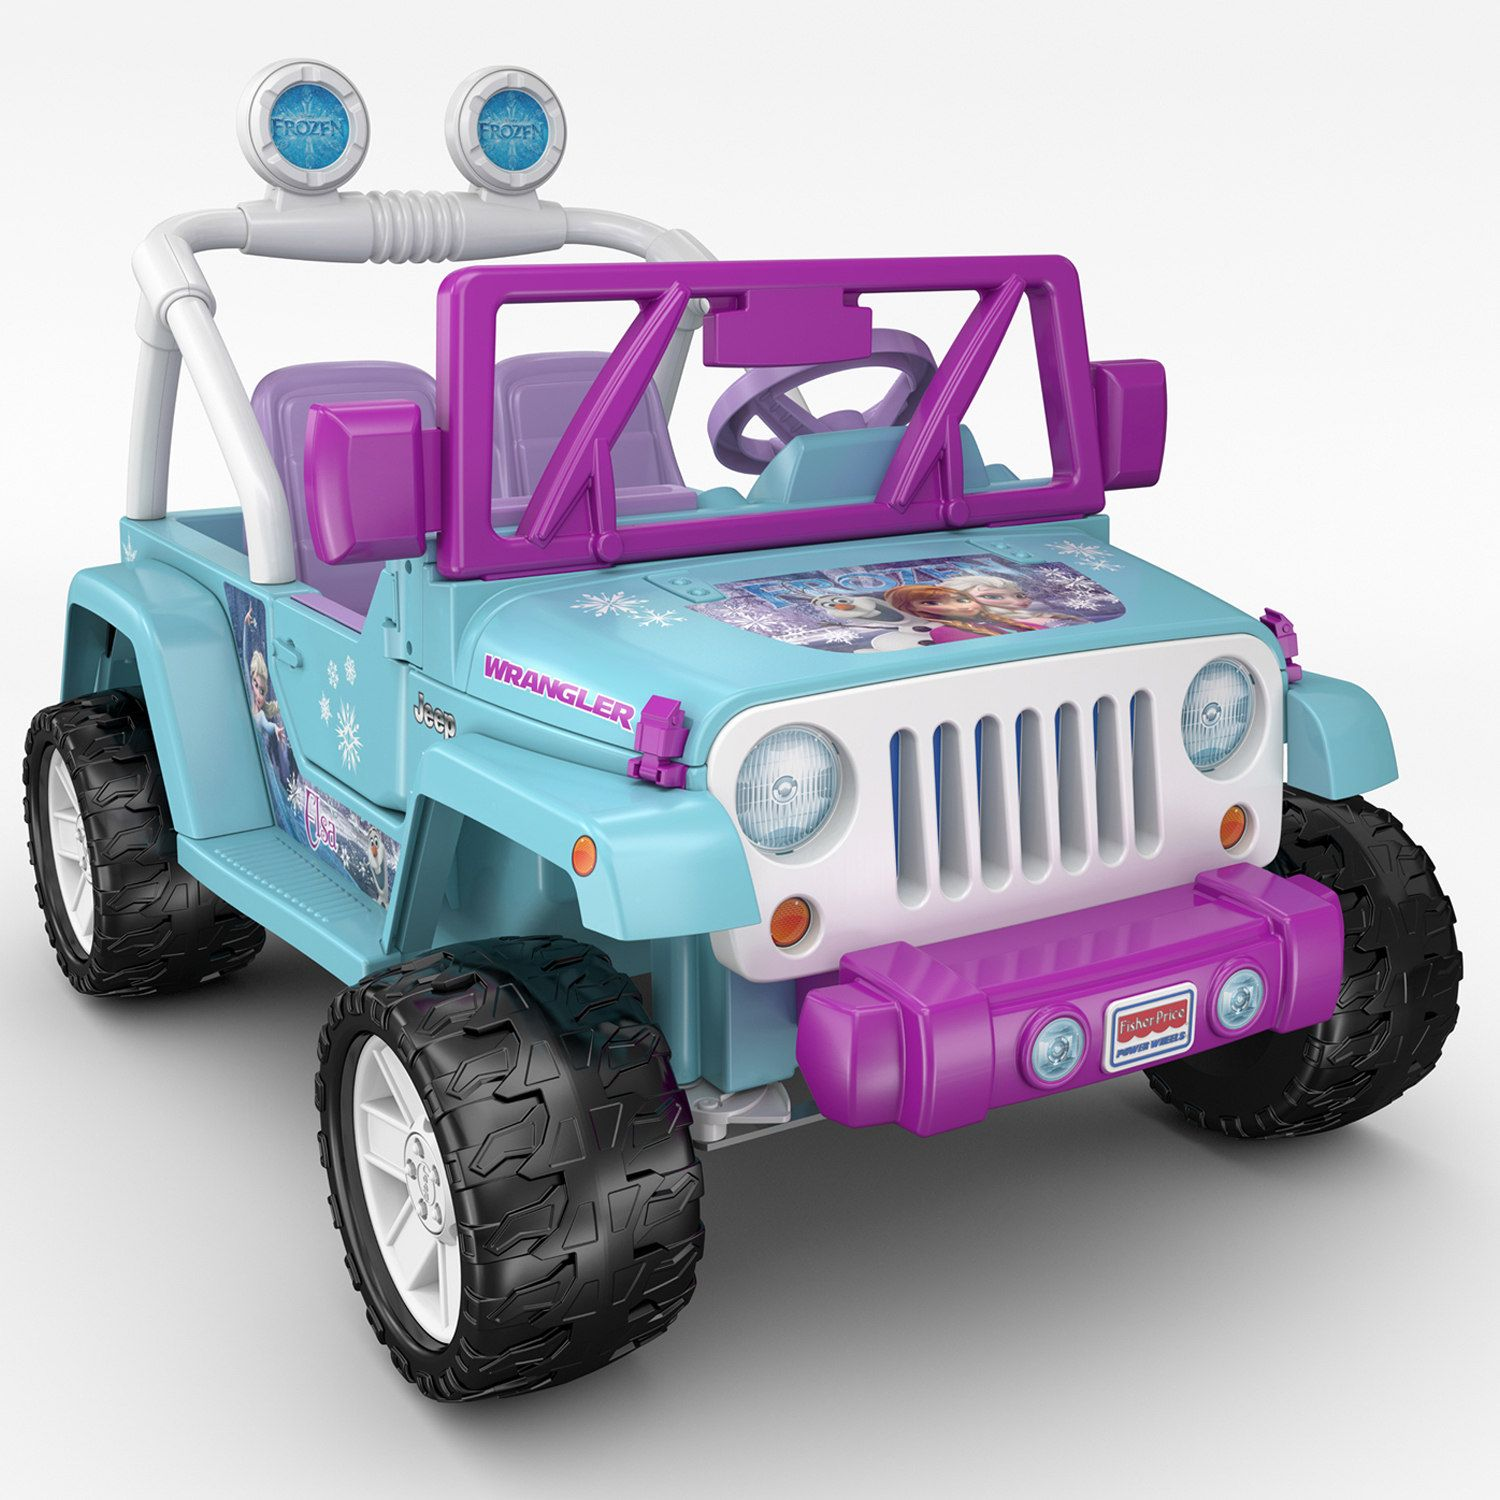 Disney S Frozen Power Wheels Jeep Wrangler By Fisher Price Power Wheels Power Wheels Jeep Ride On Toys